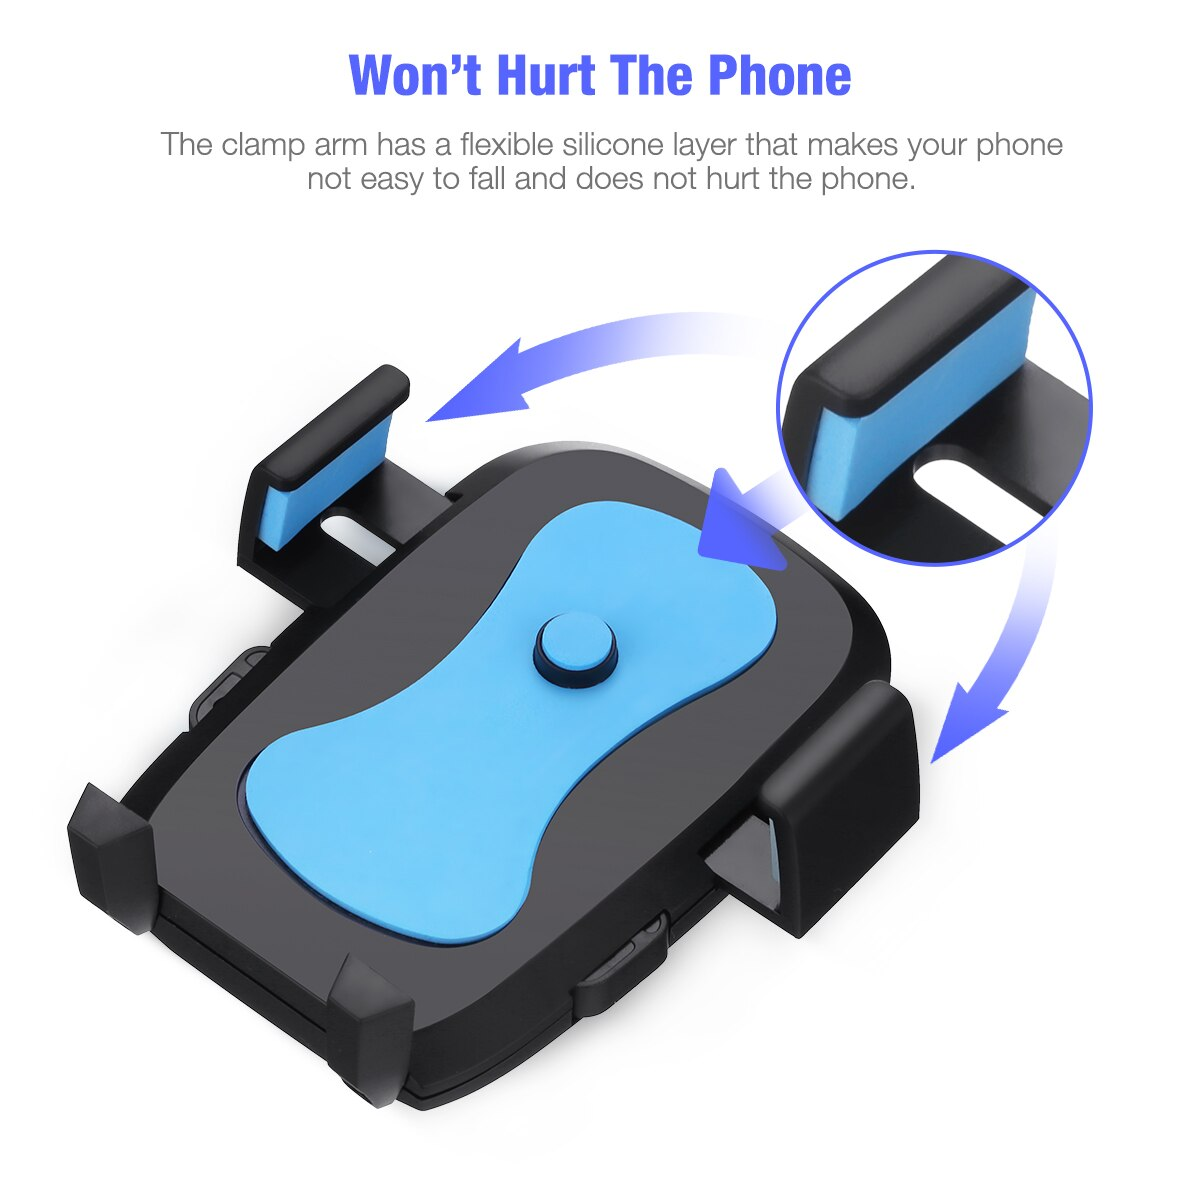 Ha3255d043d6d4ae193d360ec33aebff7m - 360 Degree Rotatable Car Phone Holder For 2.4 to 3.4inch Phone Mount Stand in Car Bracket For Poco x3 pro iPhone Xiaomi Samsung